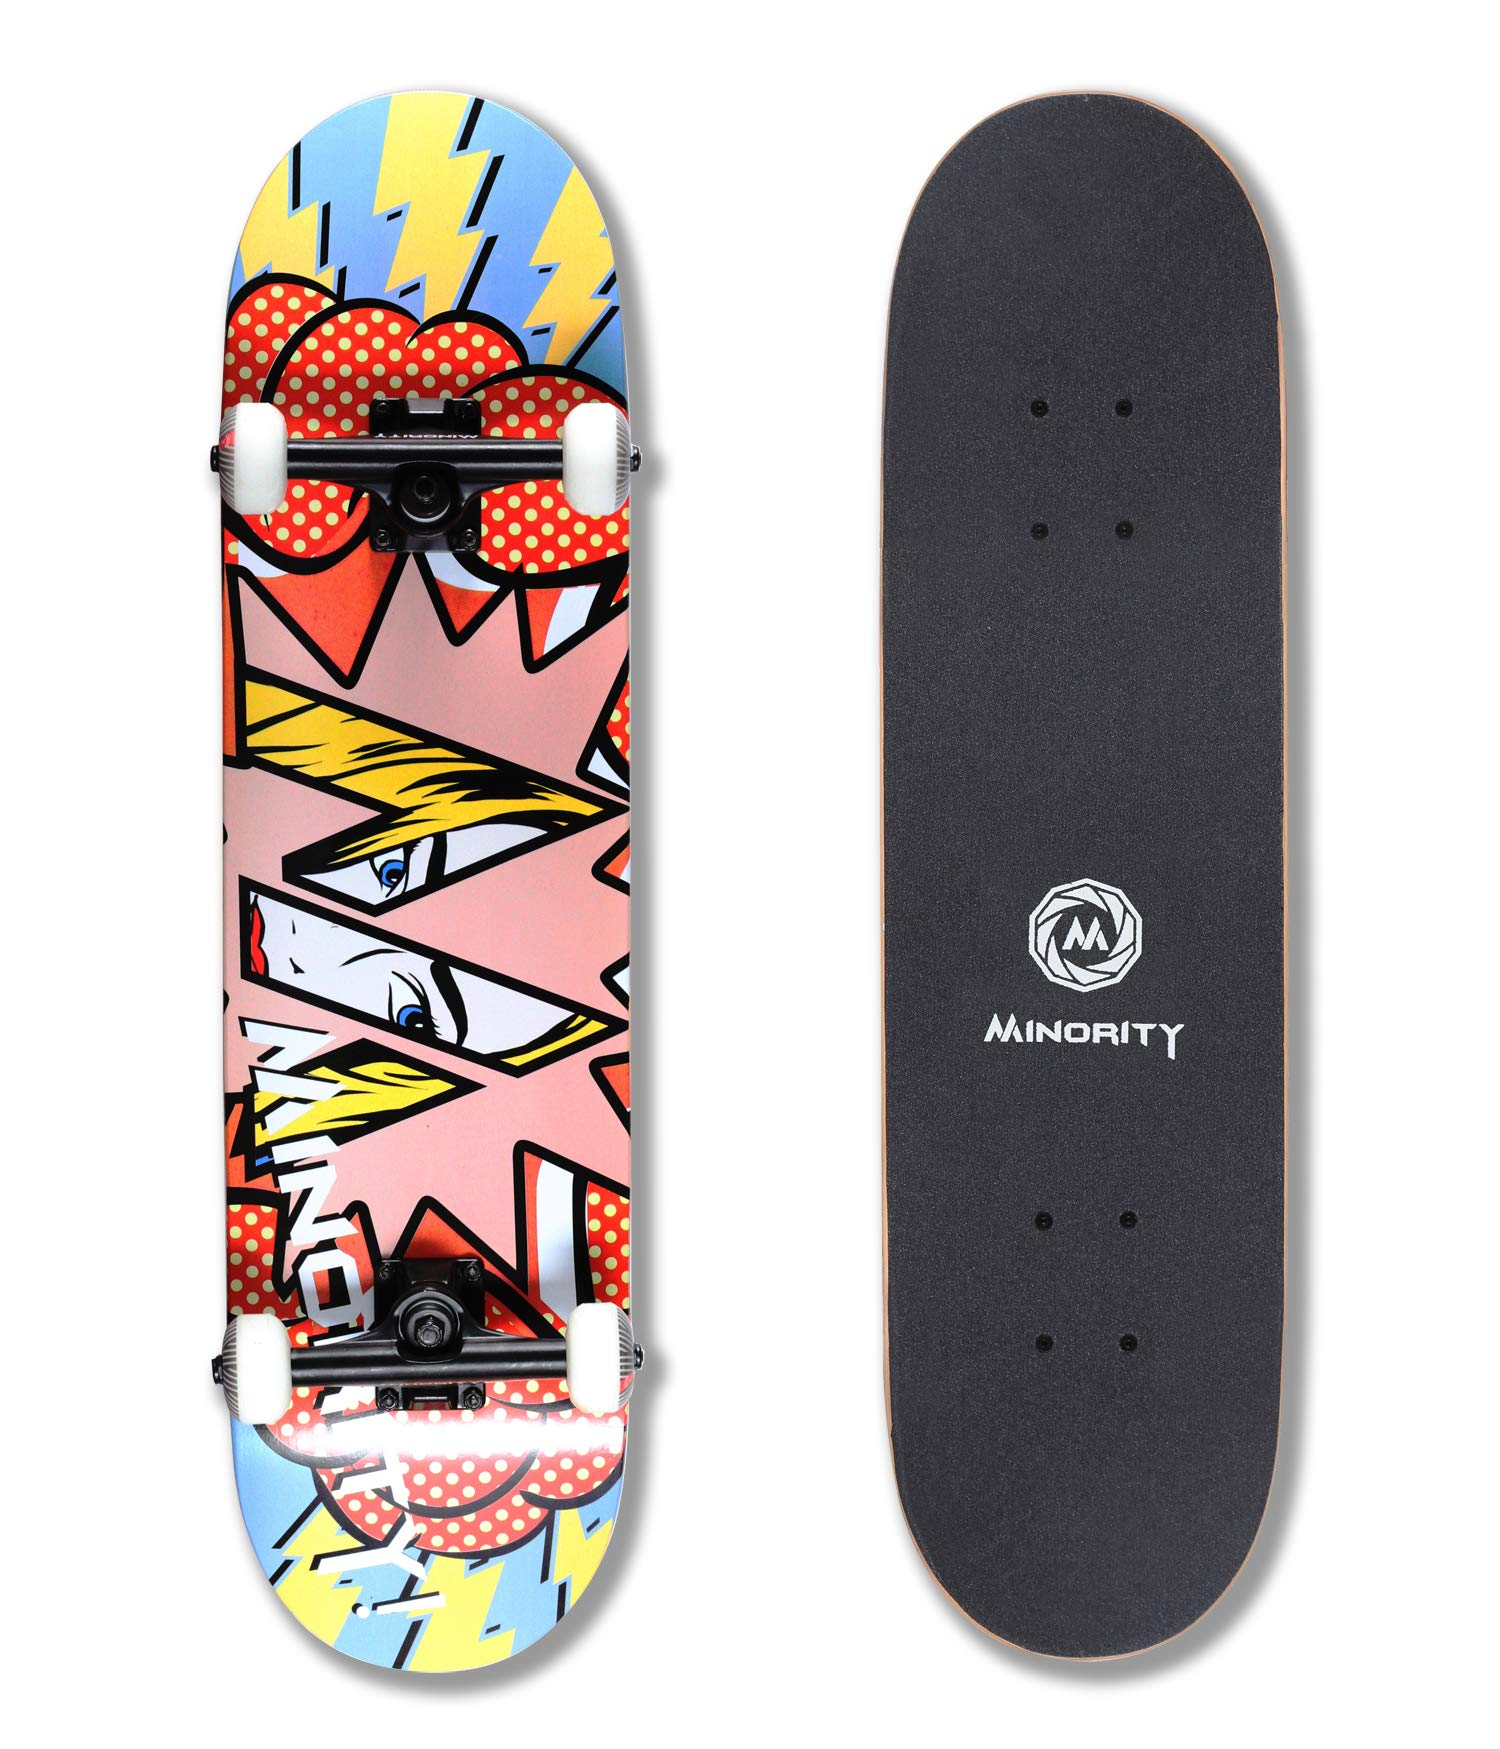 MINORITY 32inch Maple Skateboard (PopRD)